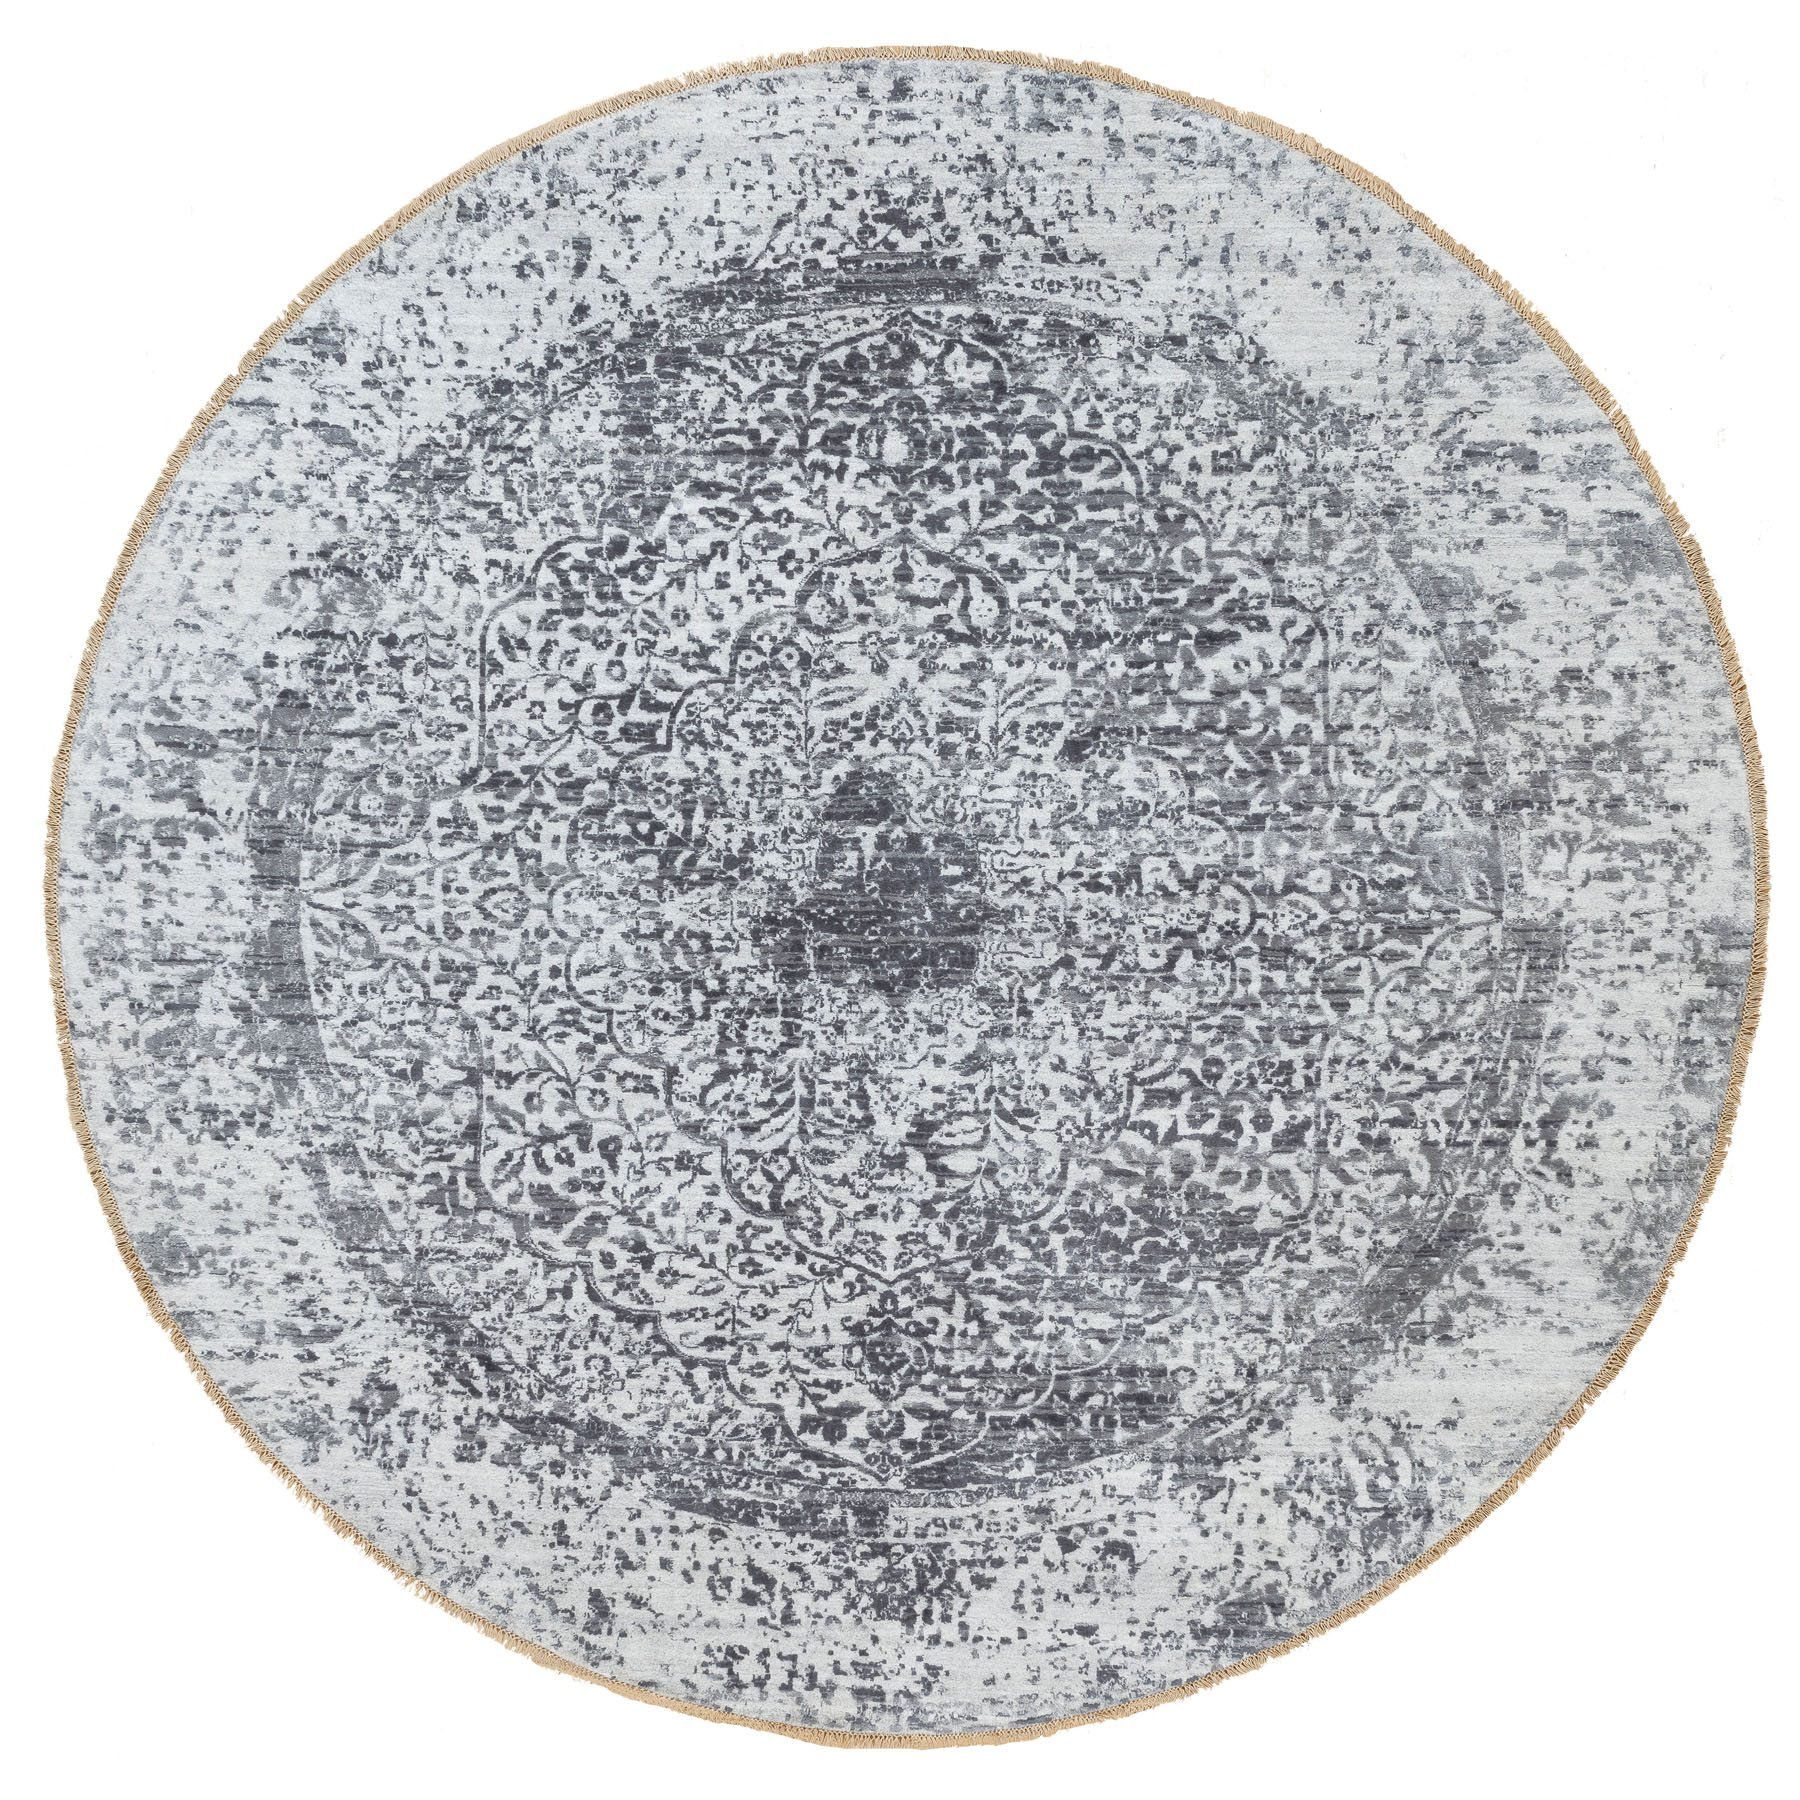 "8'10""x8'10"" Silver-Dark Gray Erased Persian Design Wool and Pure Silk Hand Knotted Round Oriental Rug"